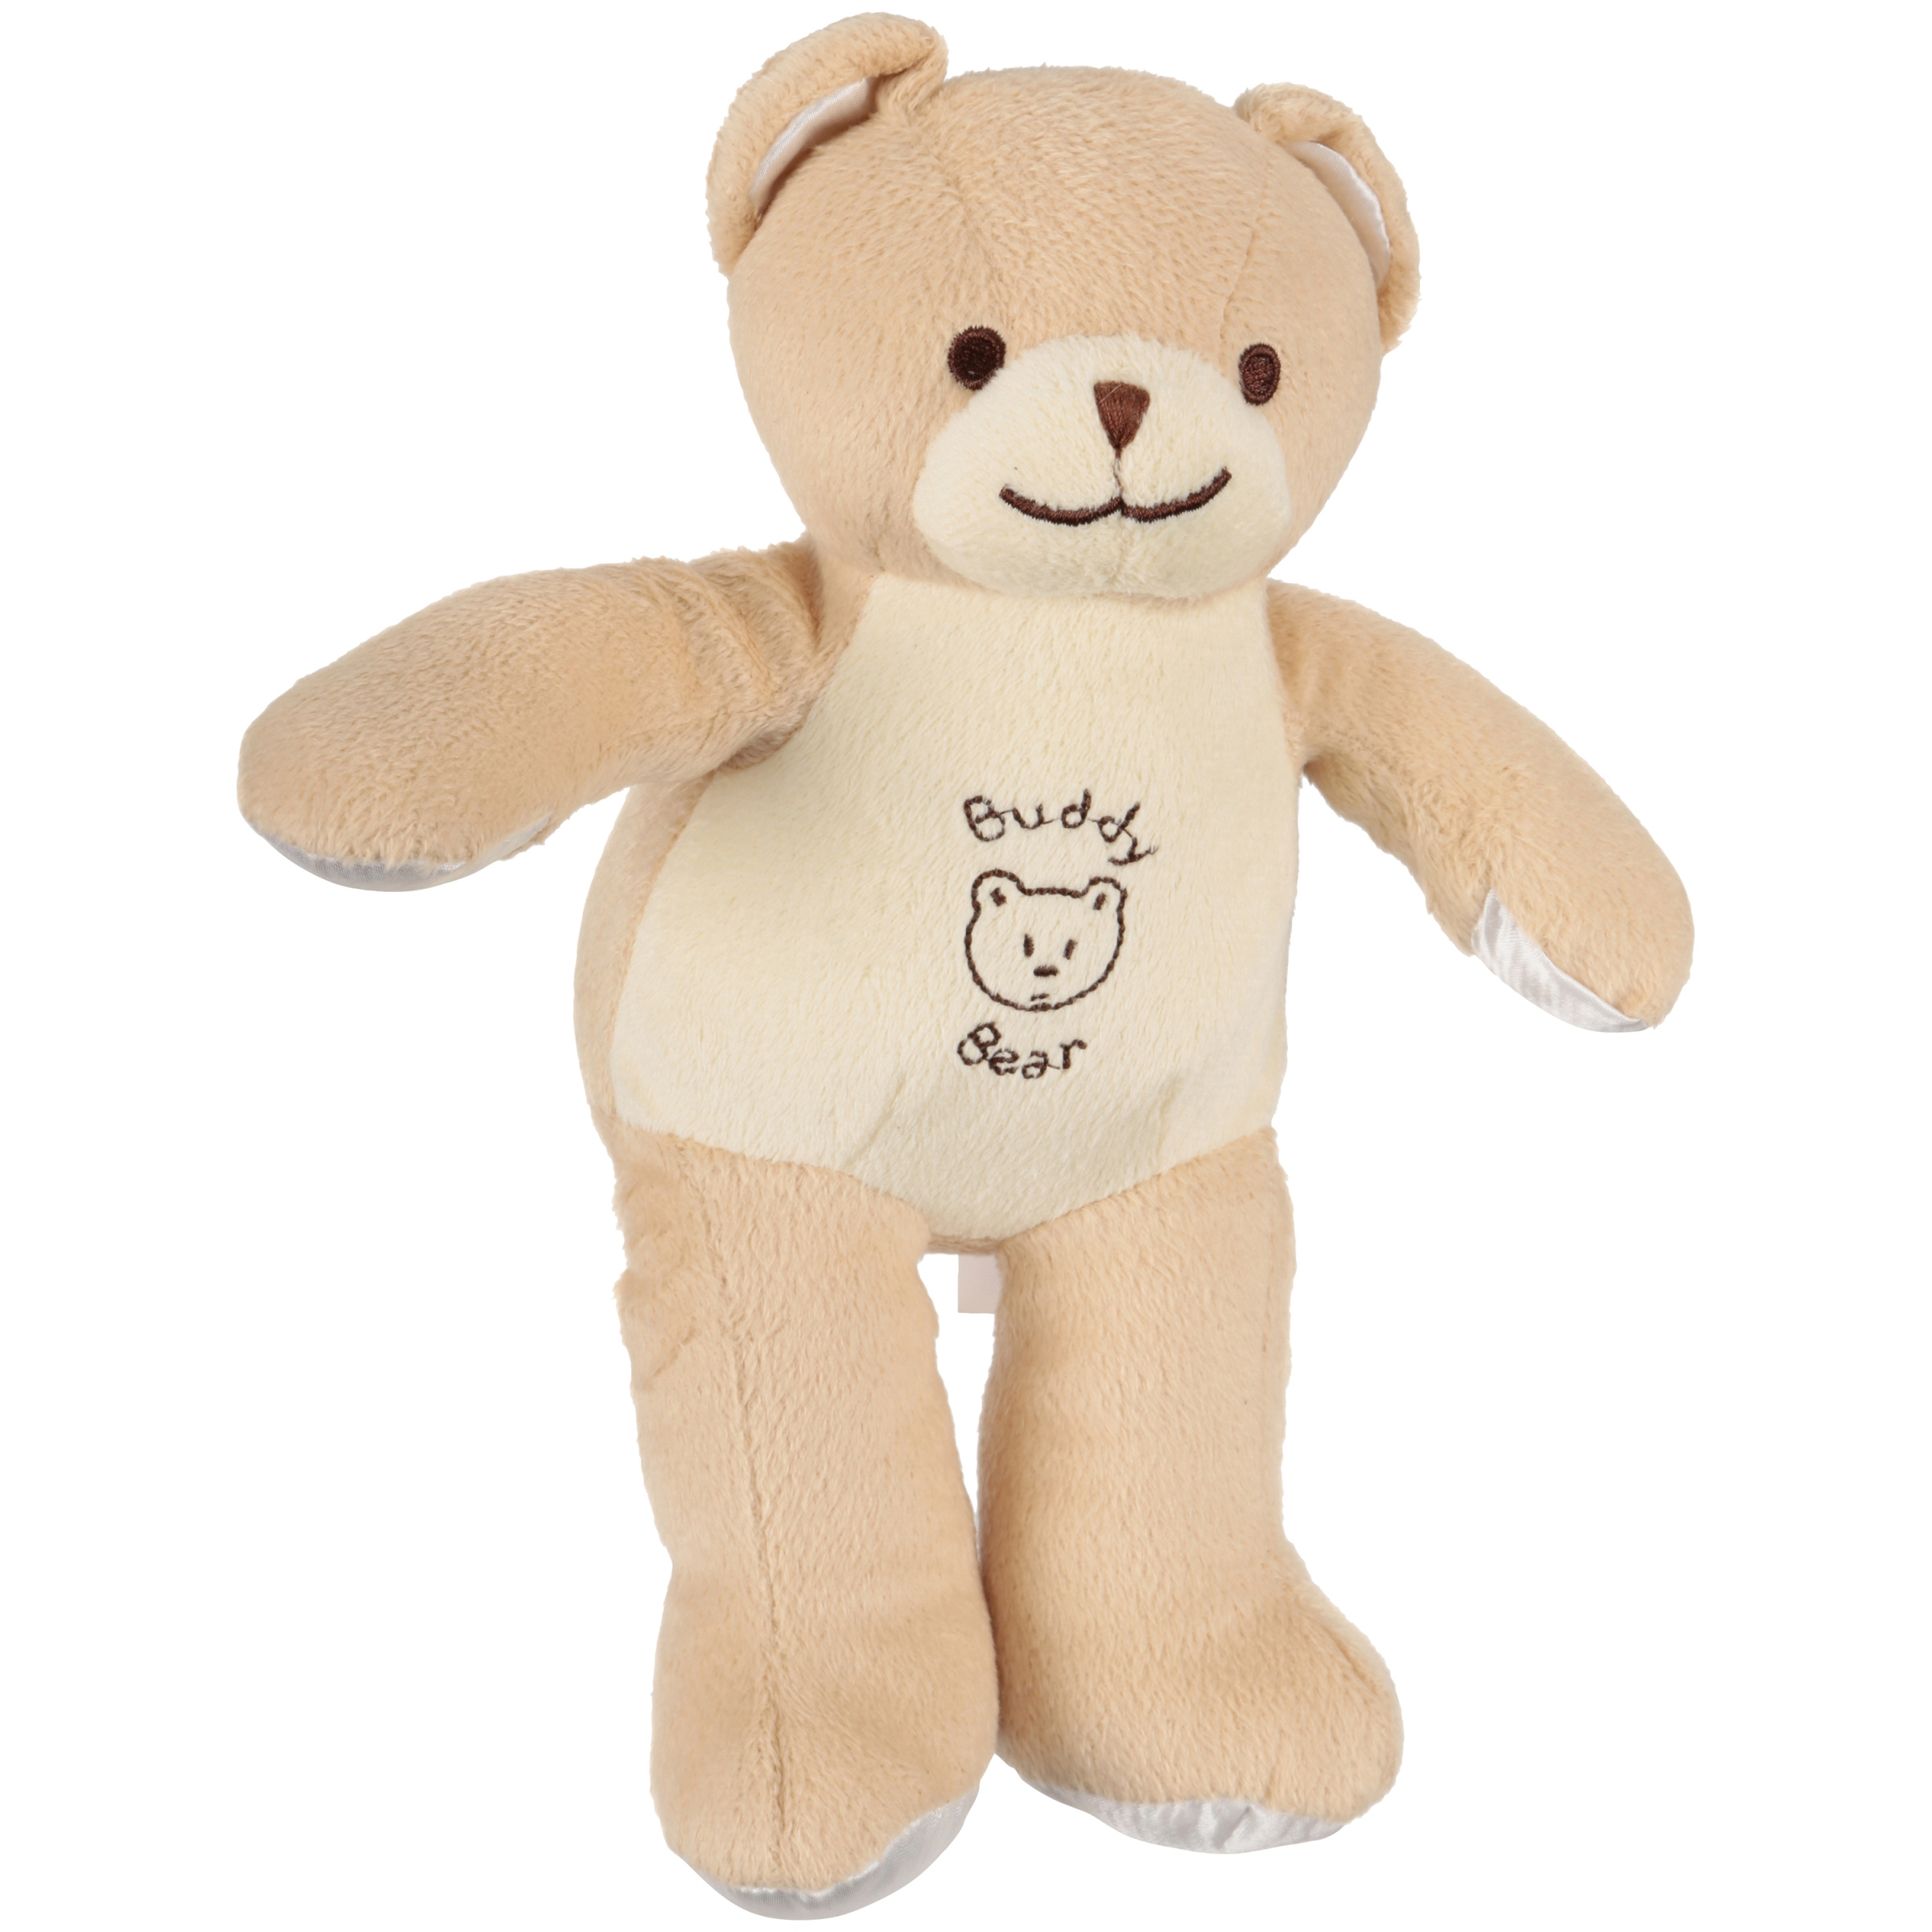 Healthy Baby, Asthma and Allergy Friendly Buddy Bear